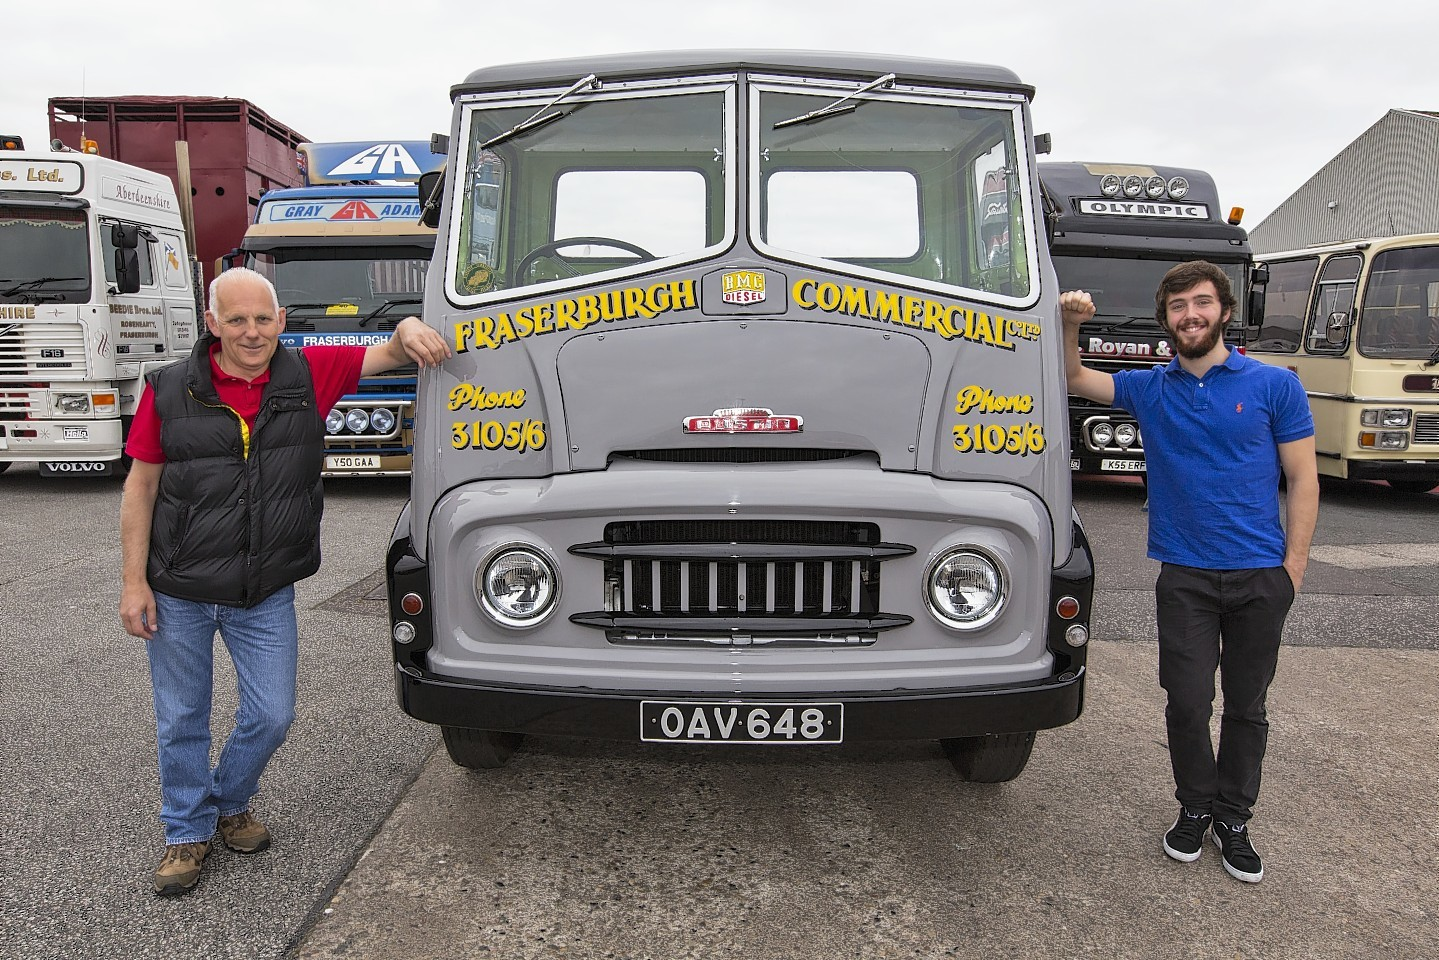 Vintage vehicles travel coast to coast raises over £1,500 for